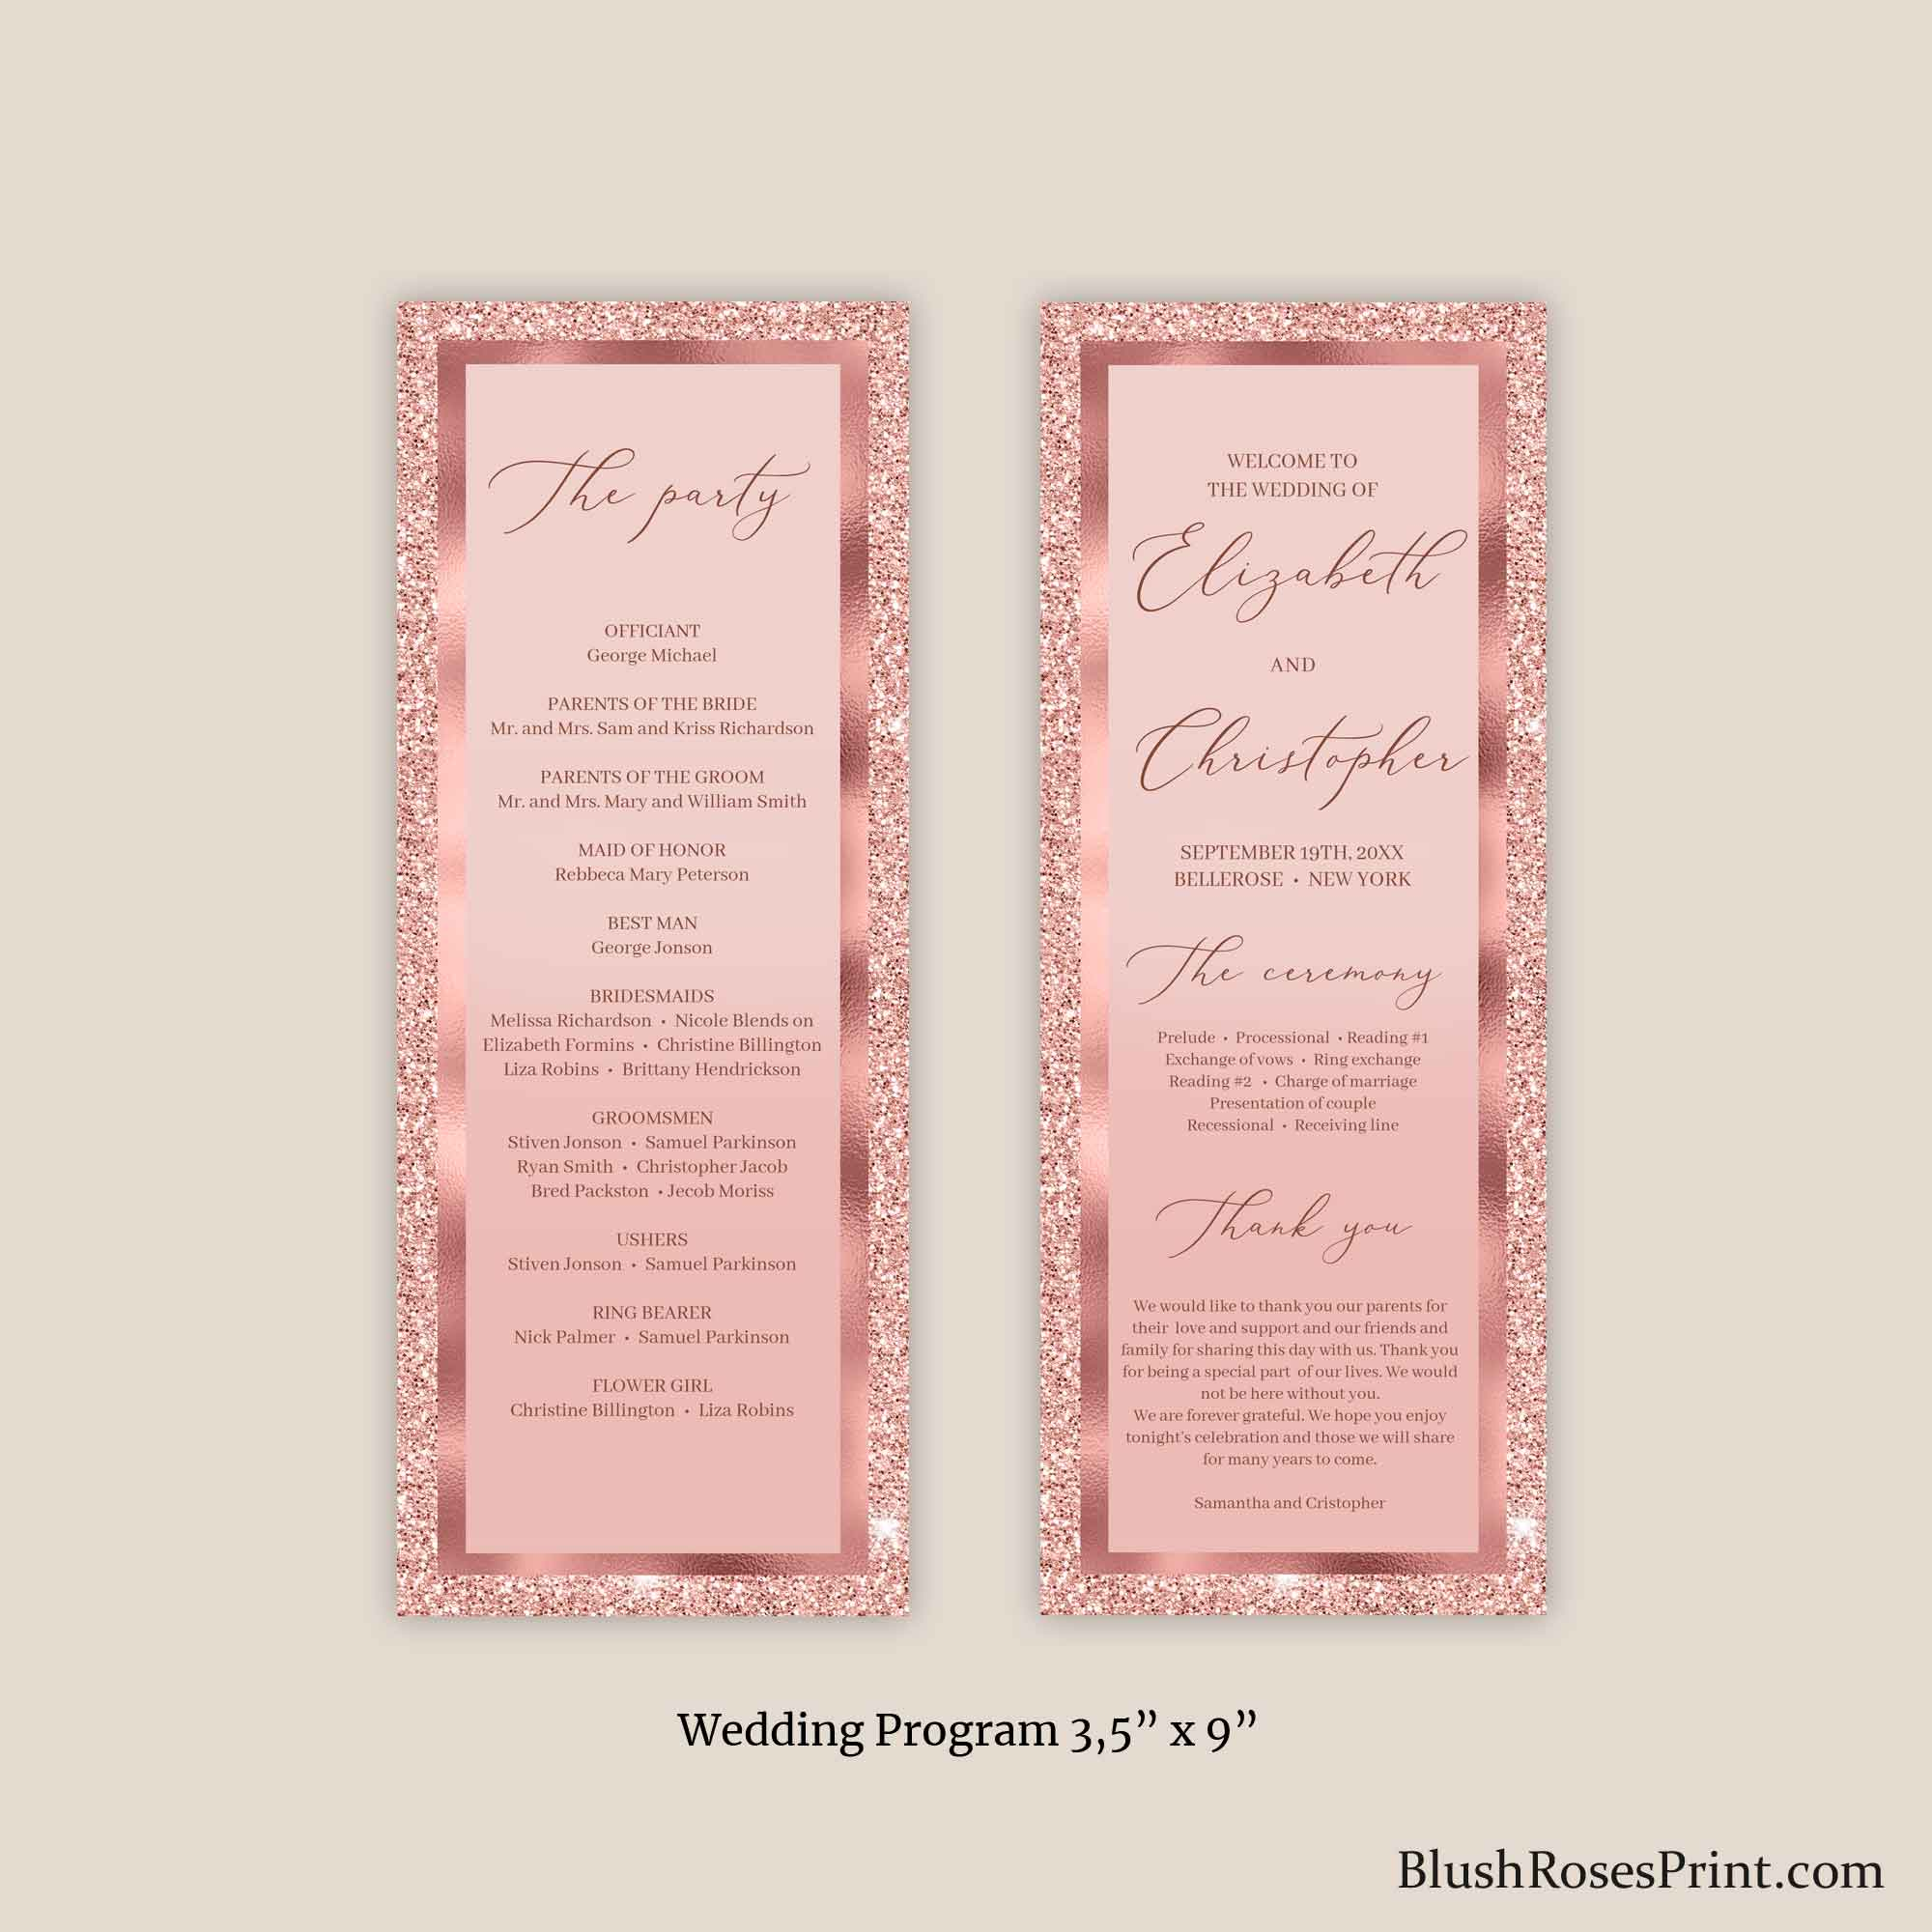 JAMY - Editable Wedding Program Rose Gold Glitter, PRINTING or DIGITAL Templates, Rose Gold Foil Ceremony Program, Bling Glamour Agenda Diy